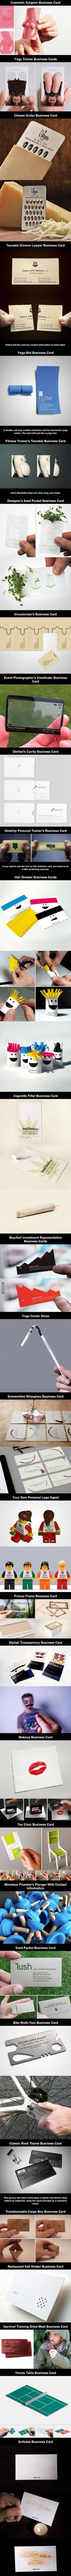 Some of these are really cool. 30 Of The Most Creative Business Cards Ever. #UniqueBusinessCards